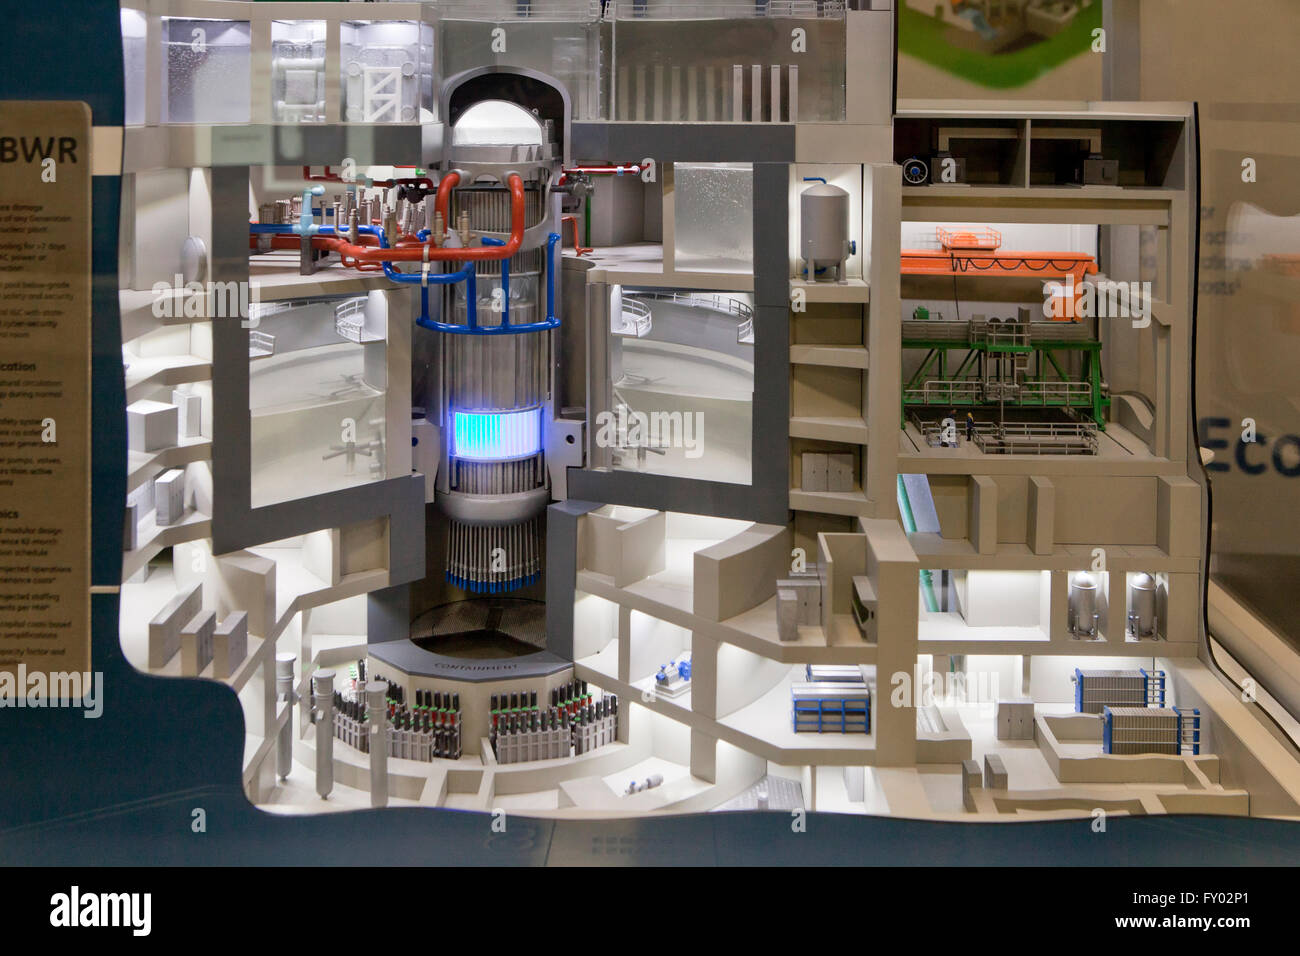 Scale model of GE HItachi nuclear reactor core building (nuclear power plant cross section view) - USA - Stock Image